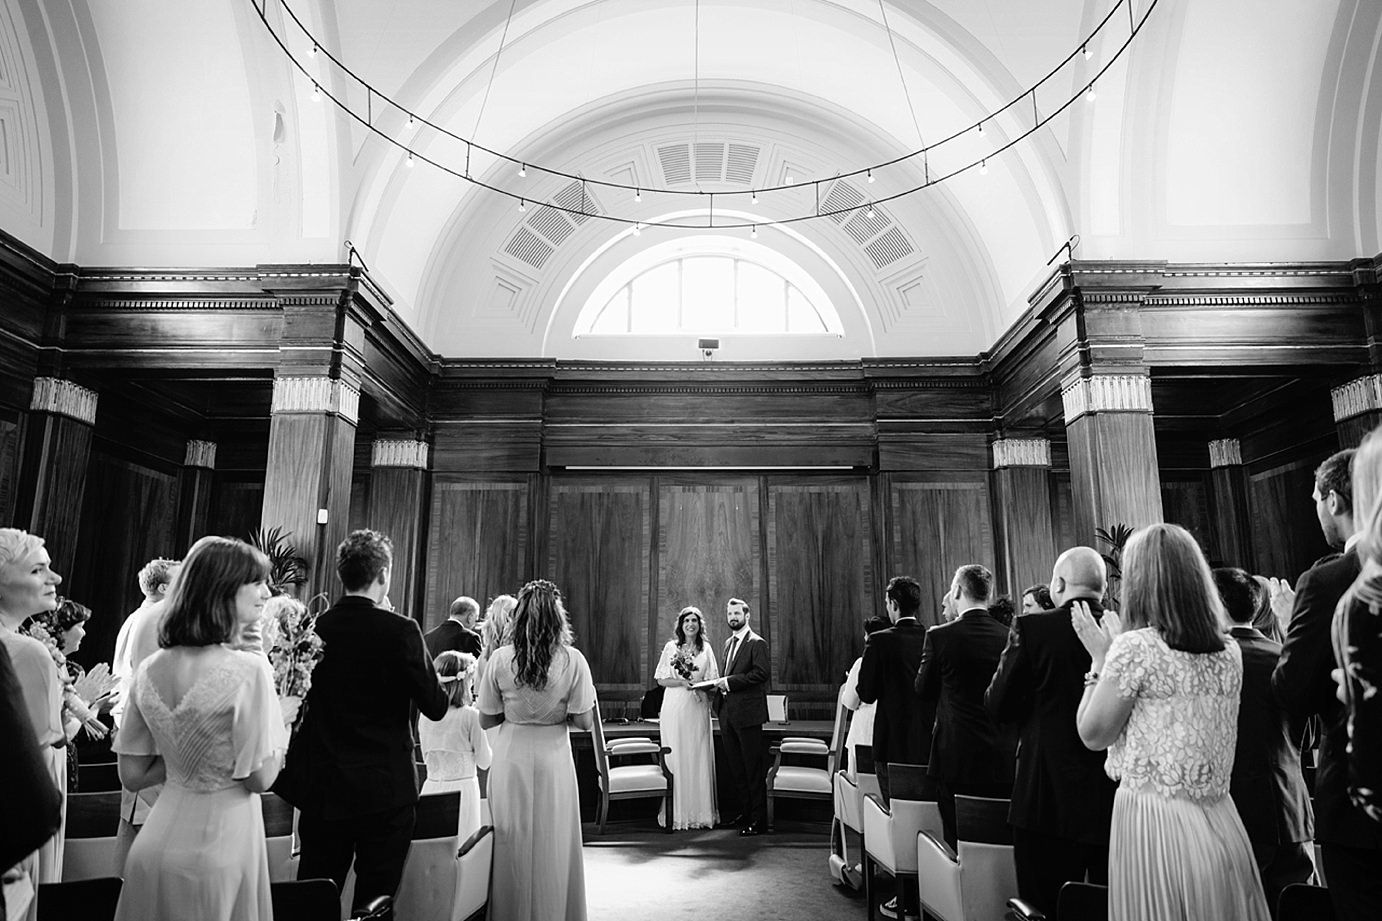 Londesborough pub wedding photography bride and groom wedding at stoke newington town hall